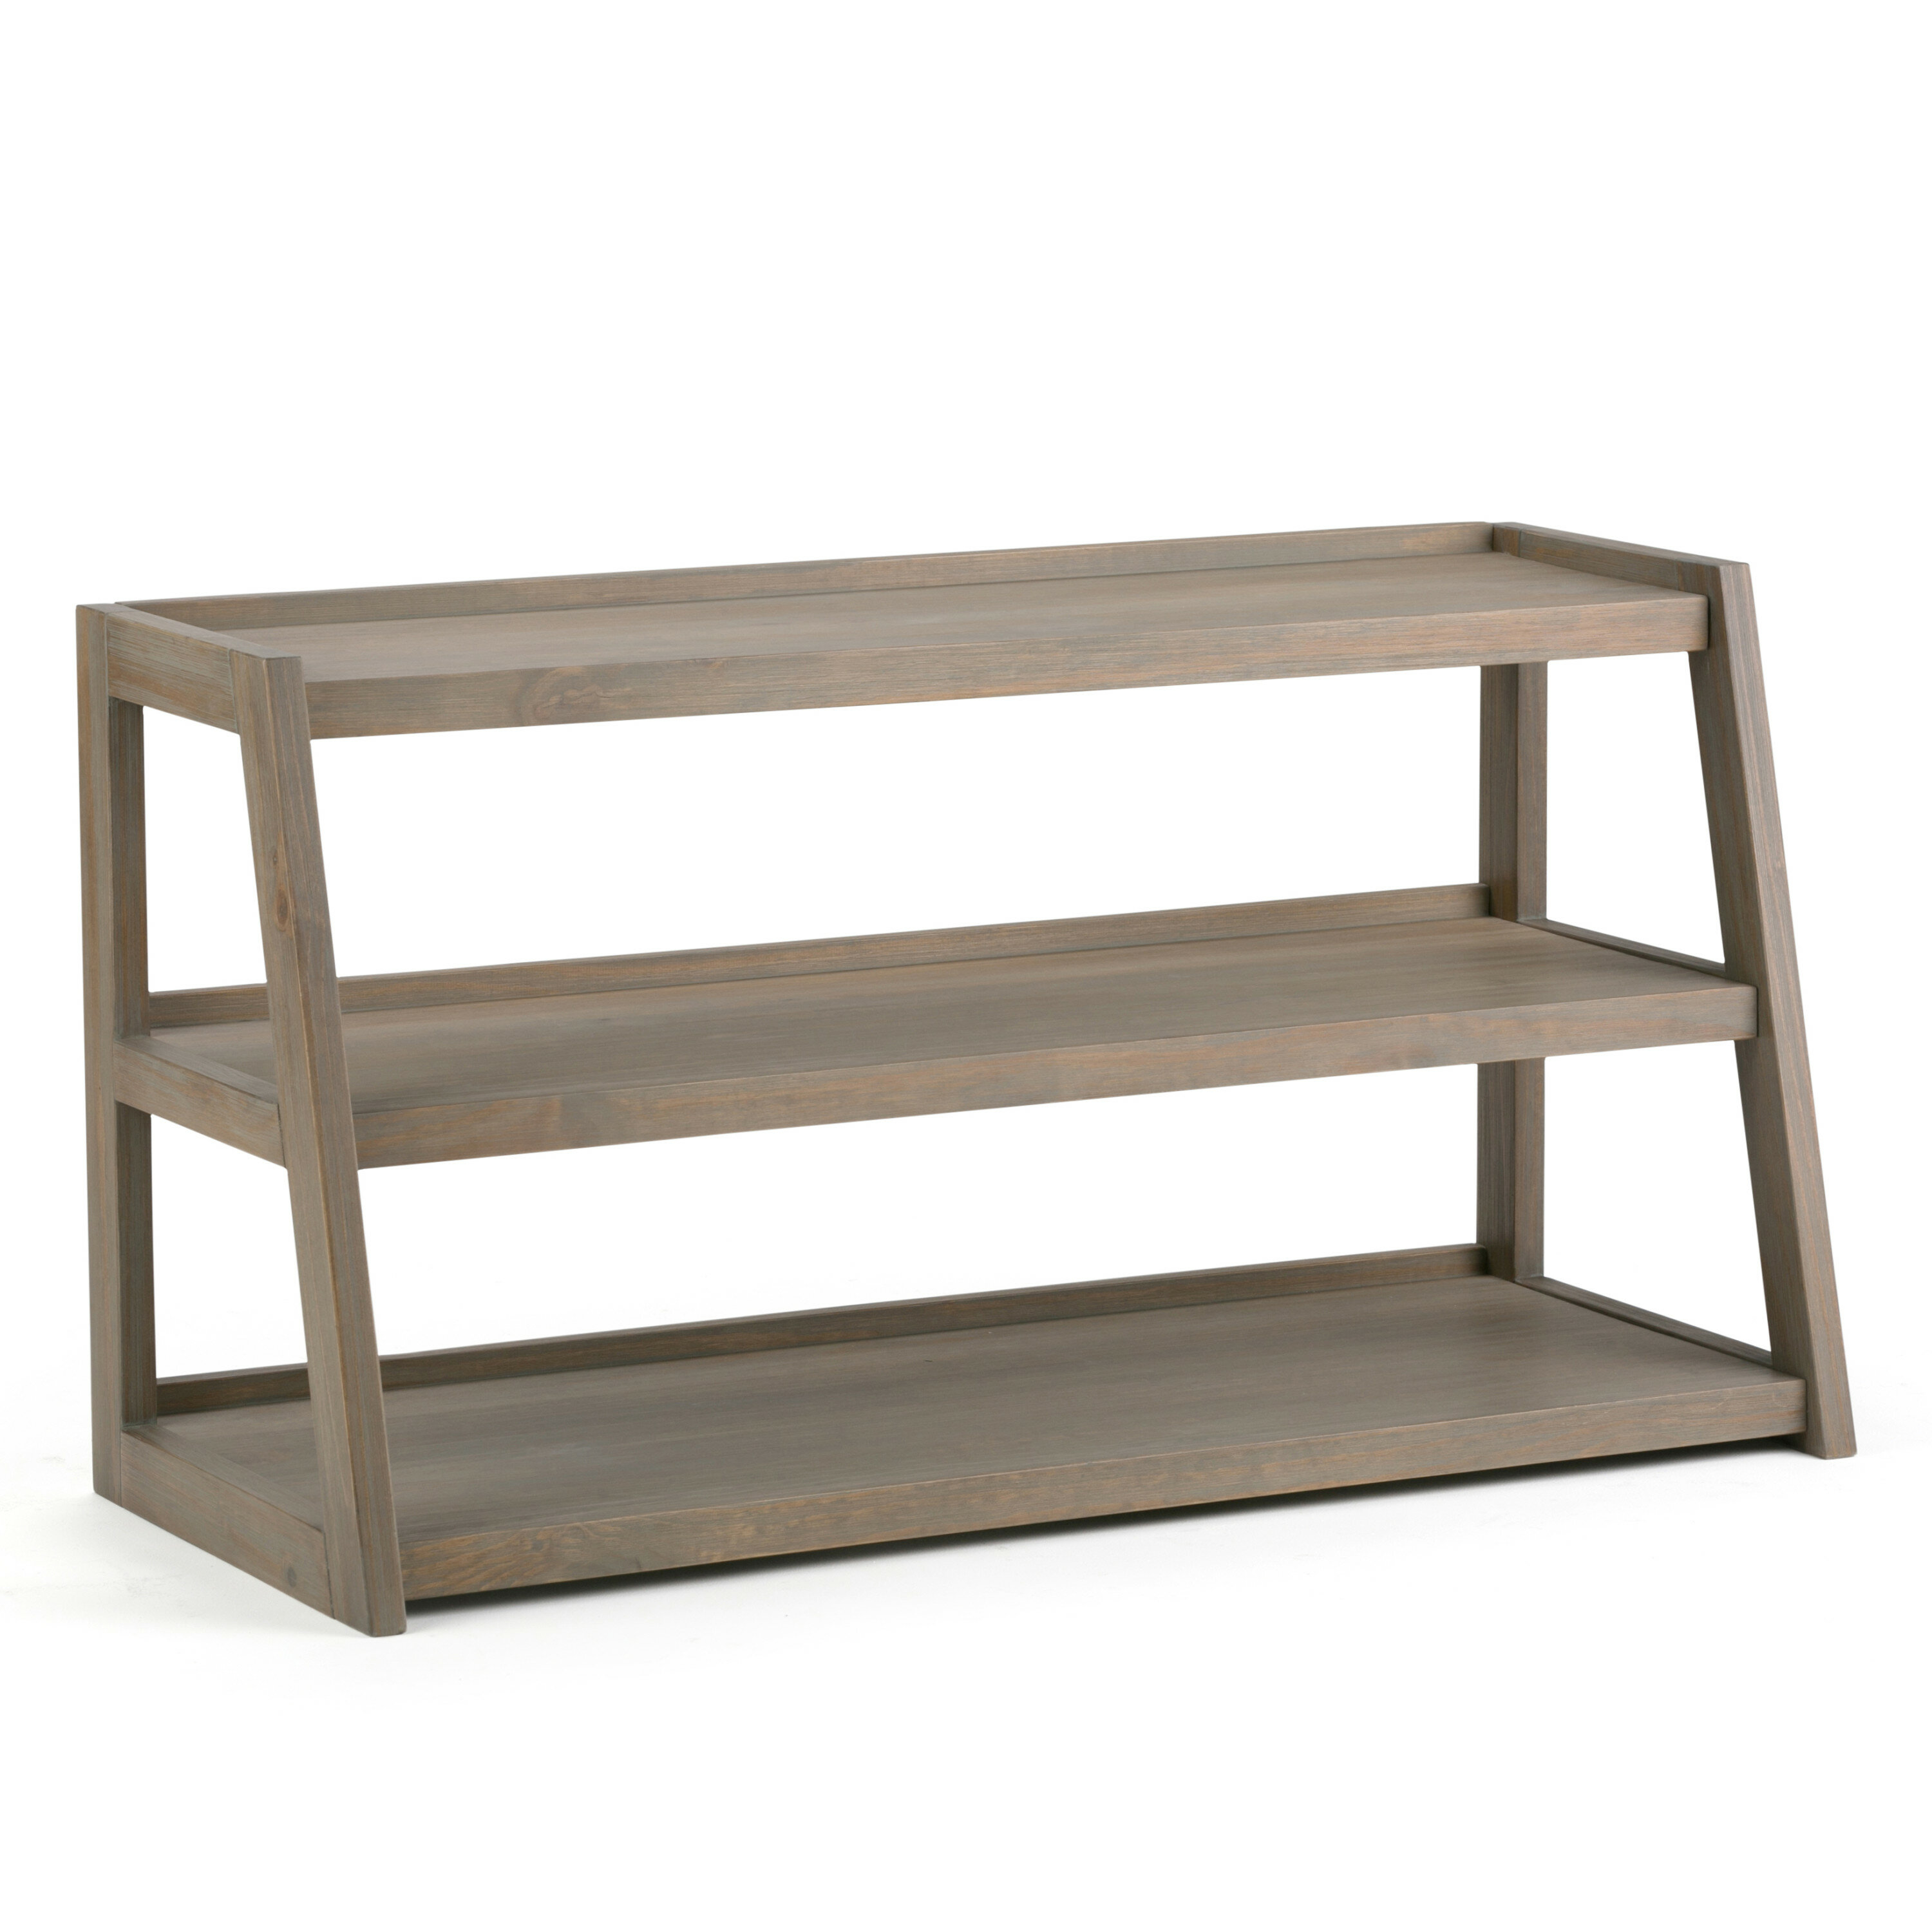 Gracie Oaks Donohoo Solid Wood Tv Stand For Tvs Up To 55 Reviews Wayfair